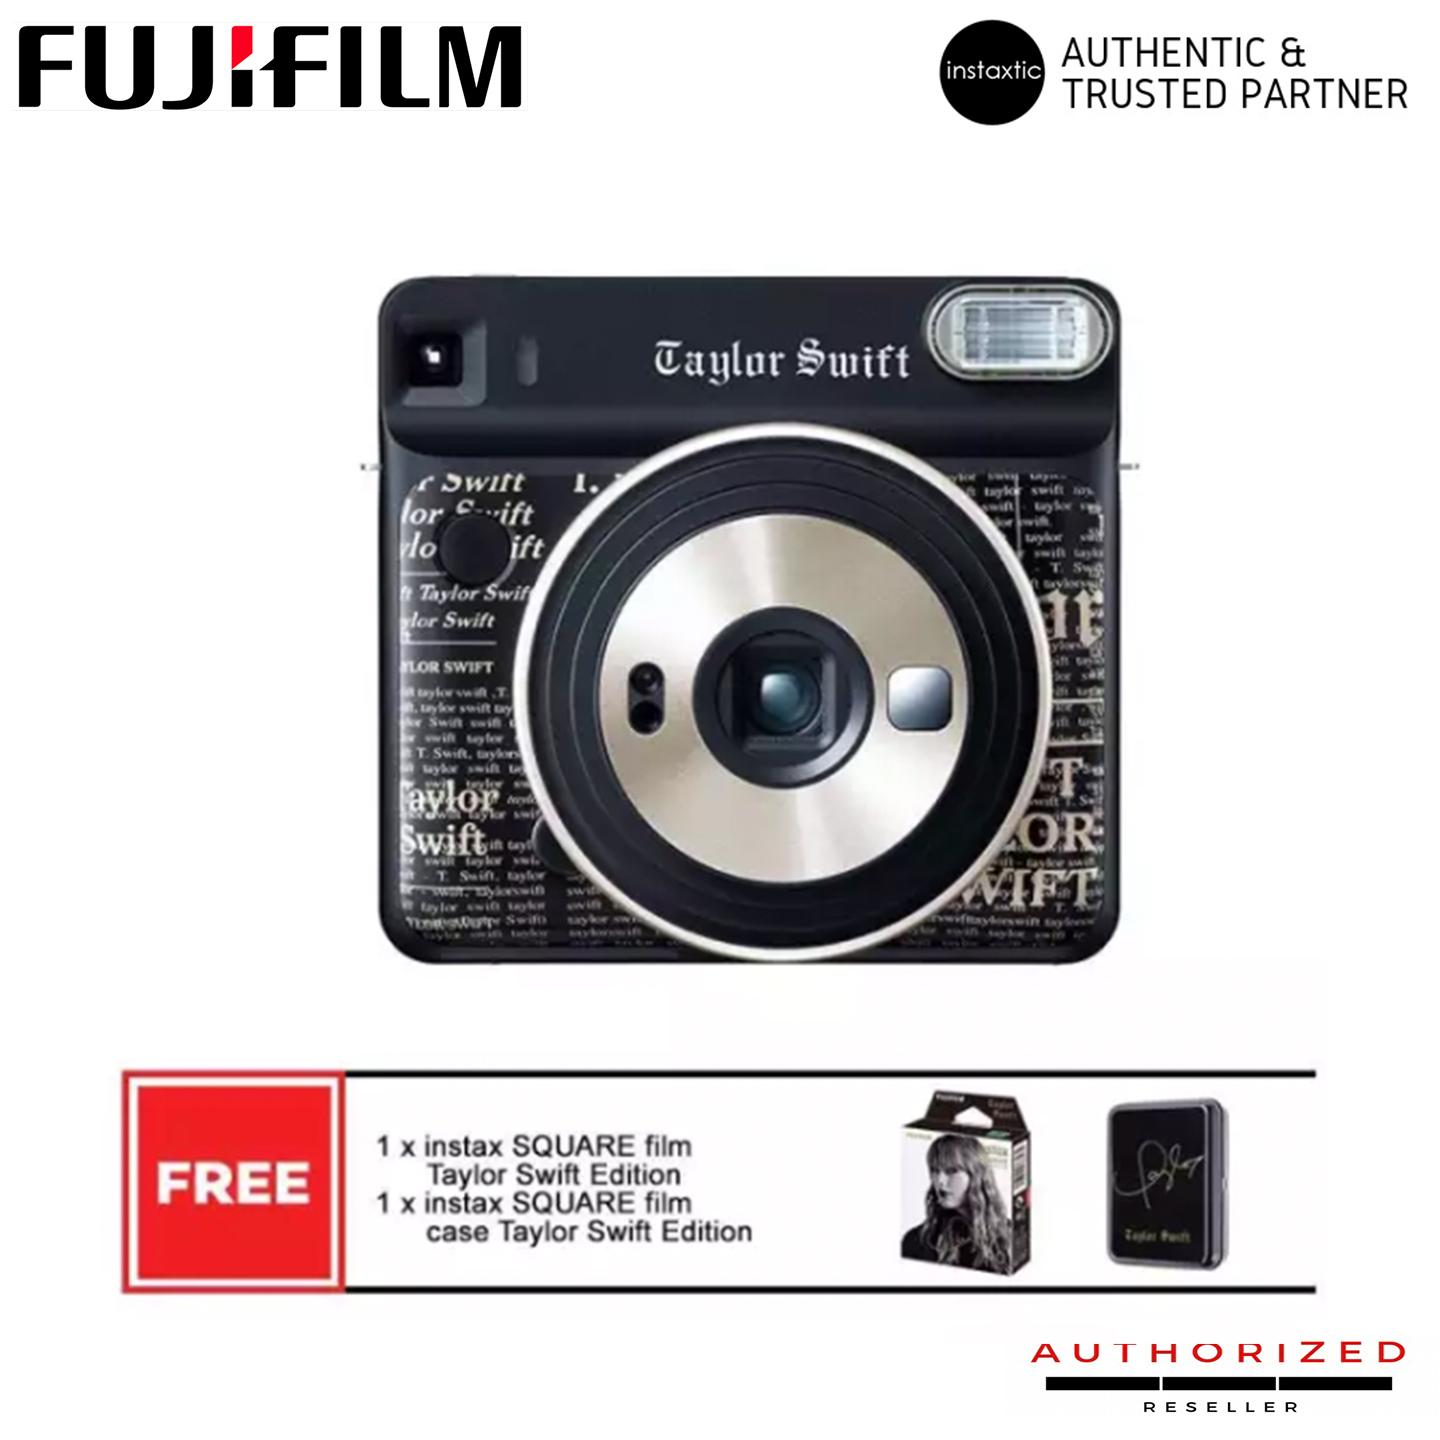 Digital Camera For Sale Instant Digi Cam Prices Brands Specs In 8s Instax One Piece Fujifilm Sq6 Square Taylor Swift Edition